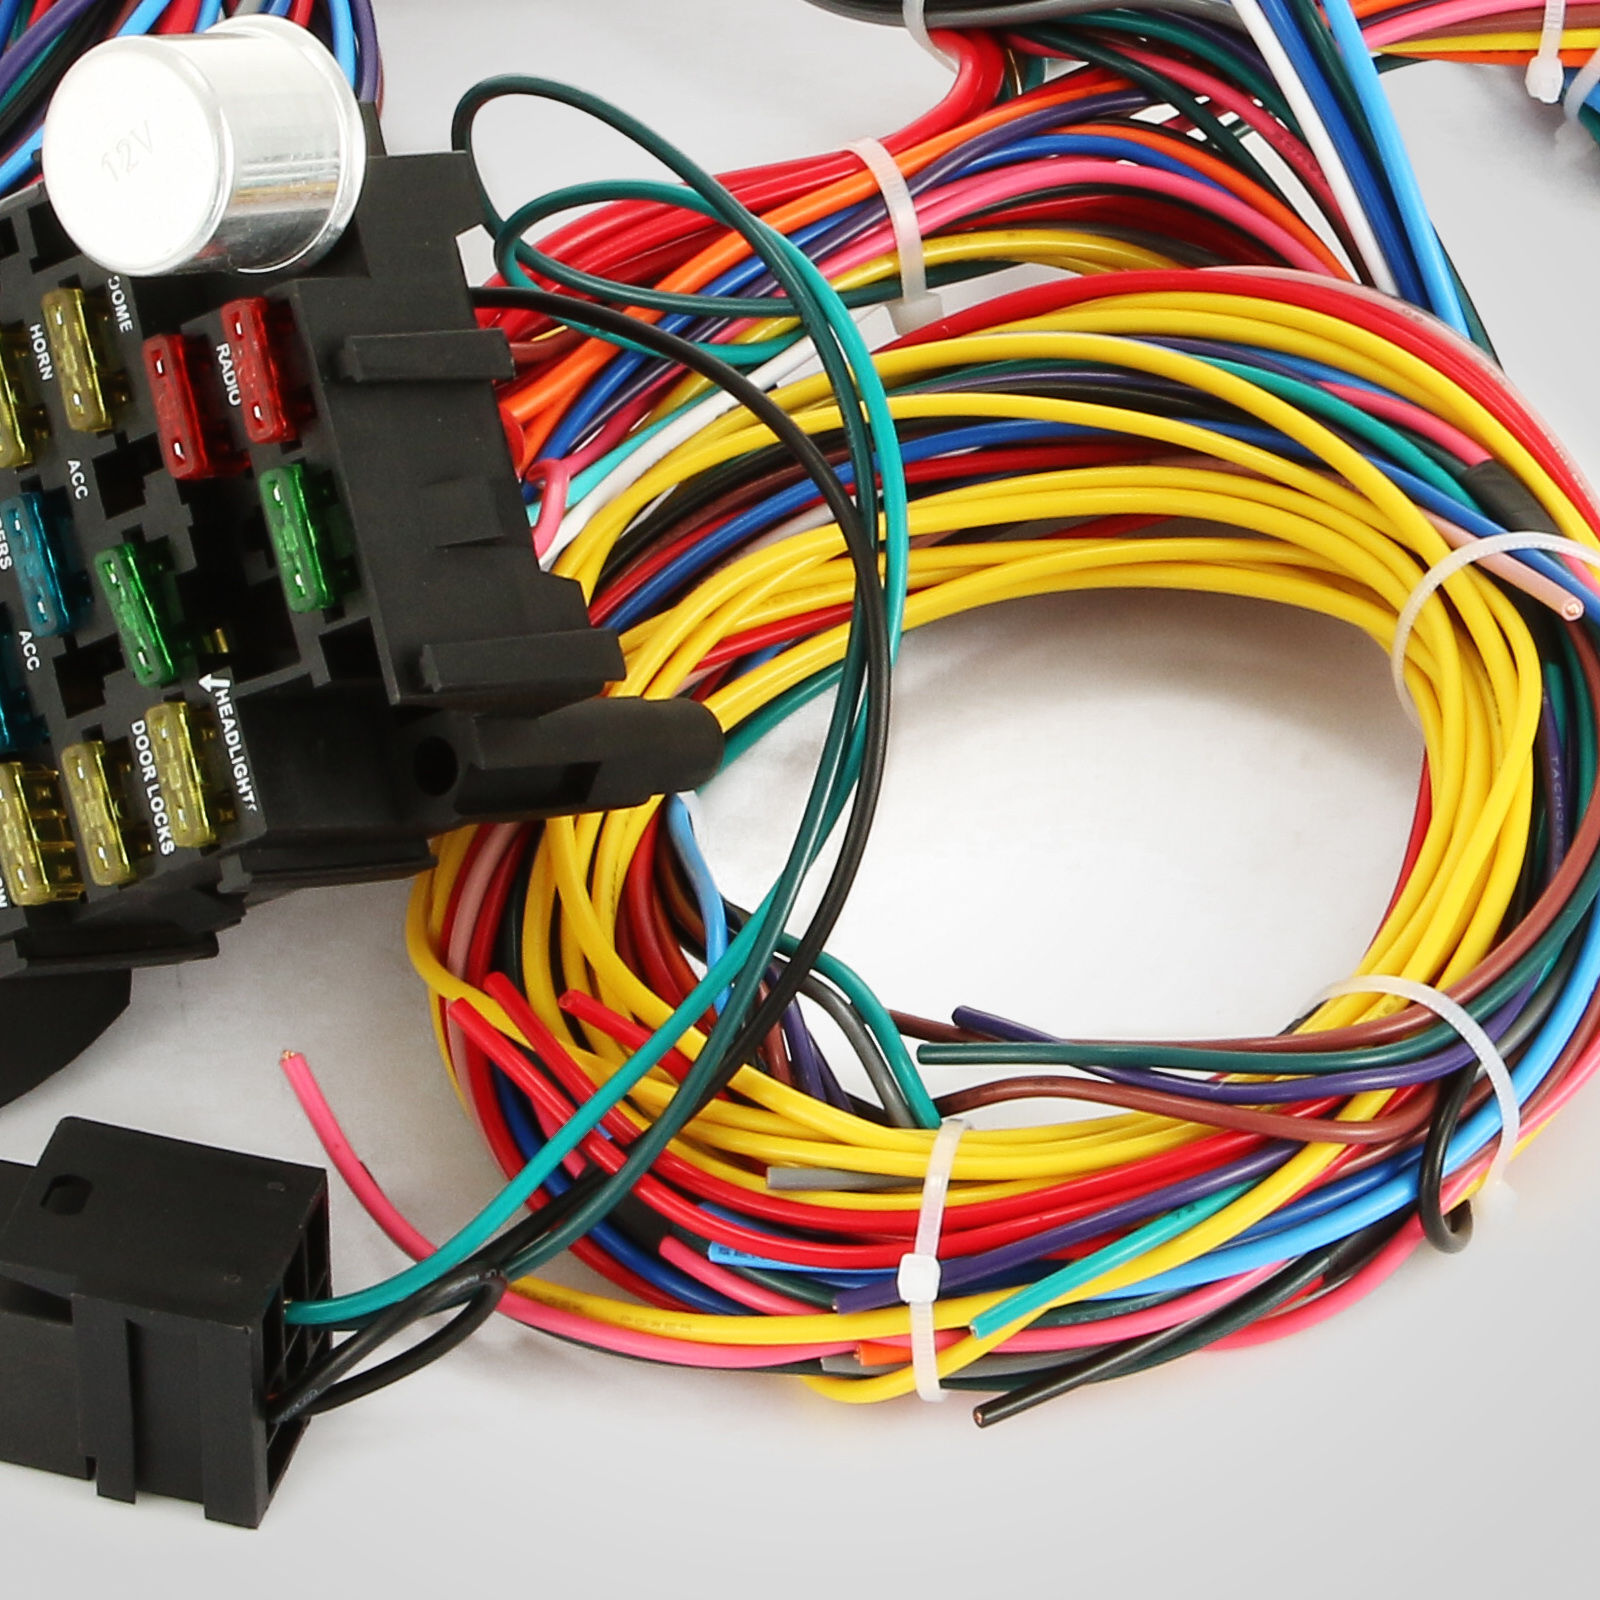 ez wiring 21 circuit harness ply ez wiring 21 circuit diagram for mopar 21 circuit ez wiring harness chevy universal wires install ...